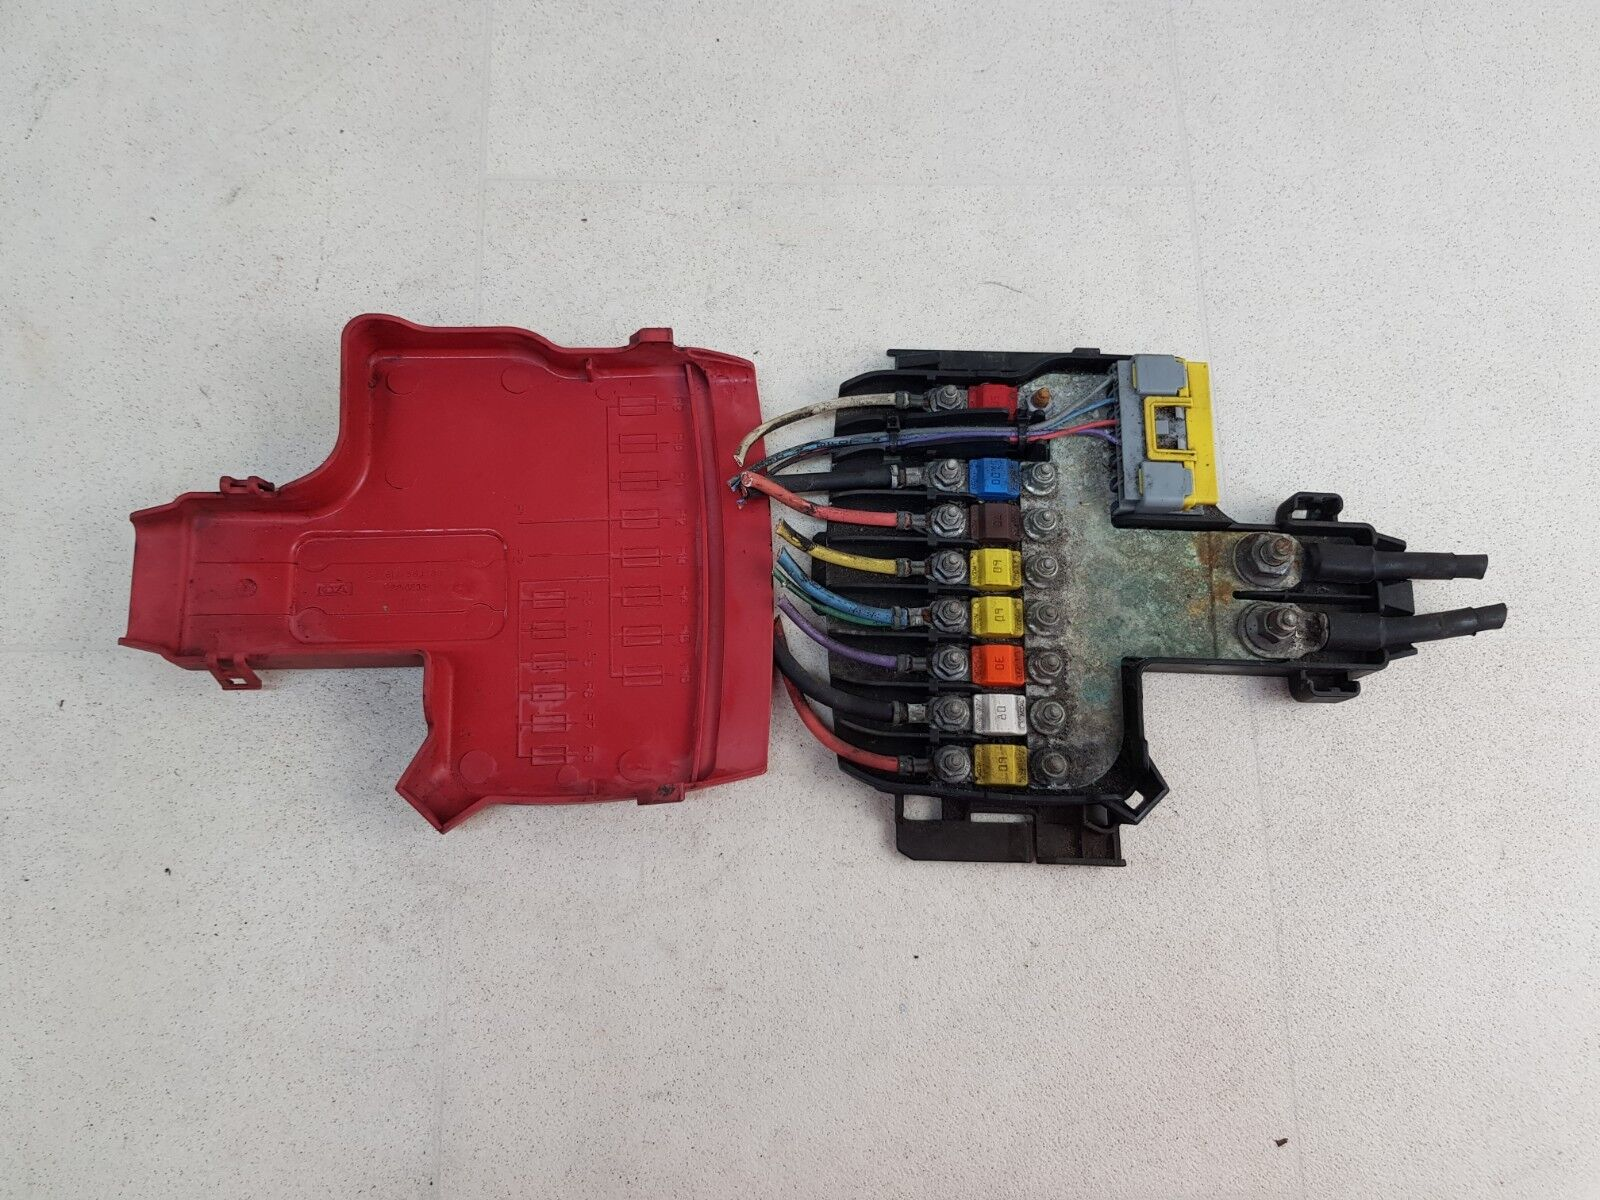 hight resolution of details about citroen c4 picasso mk1 07 13 engine battery fuse box unit with cover 9662914480